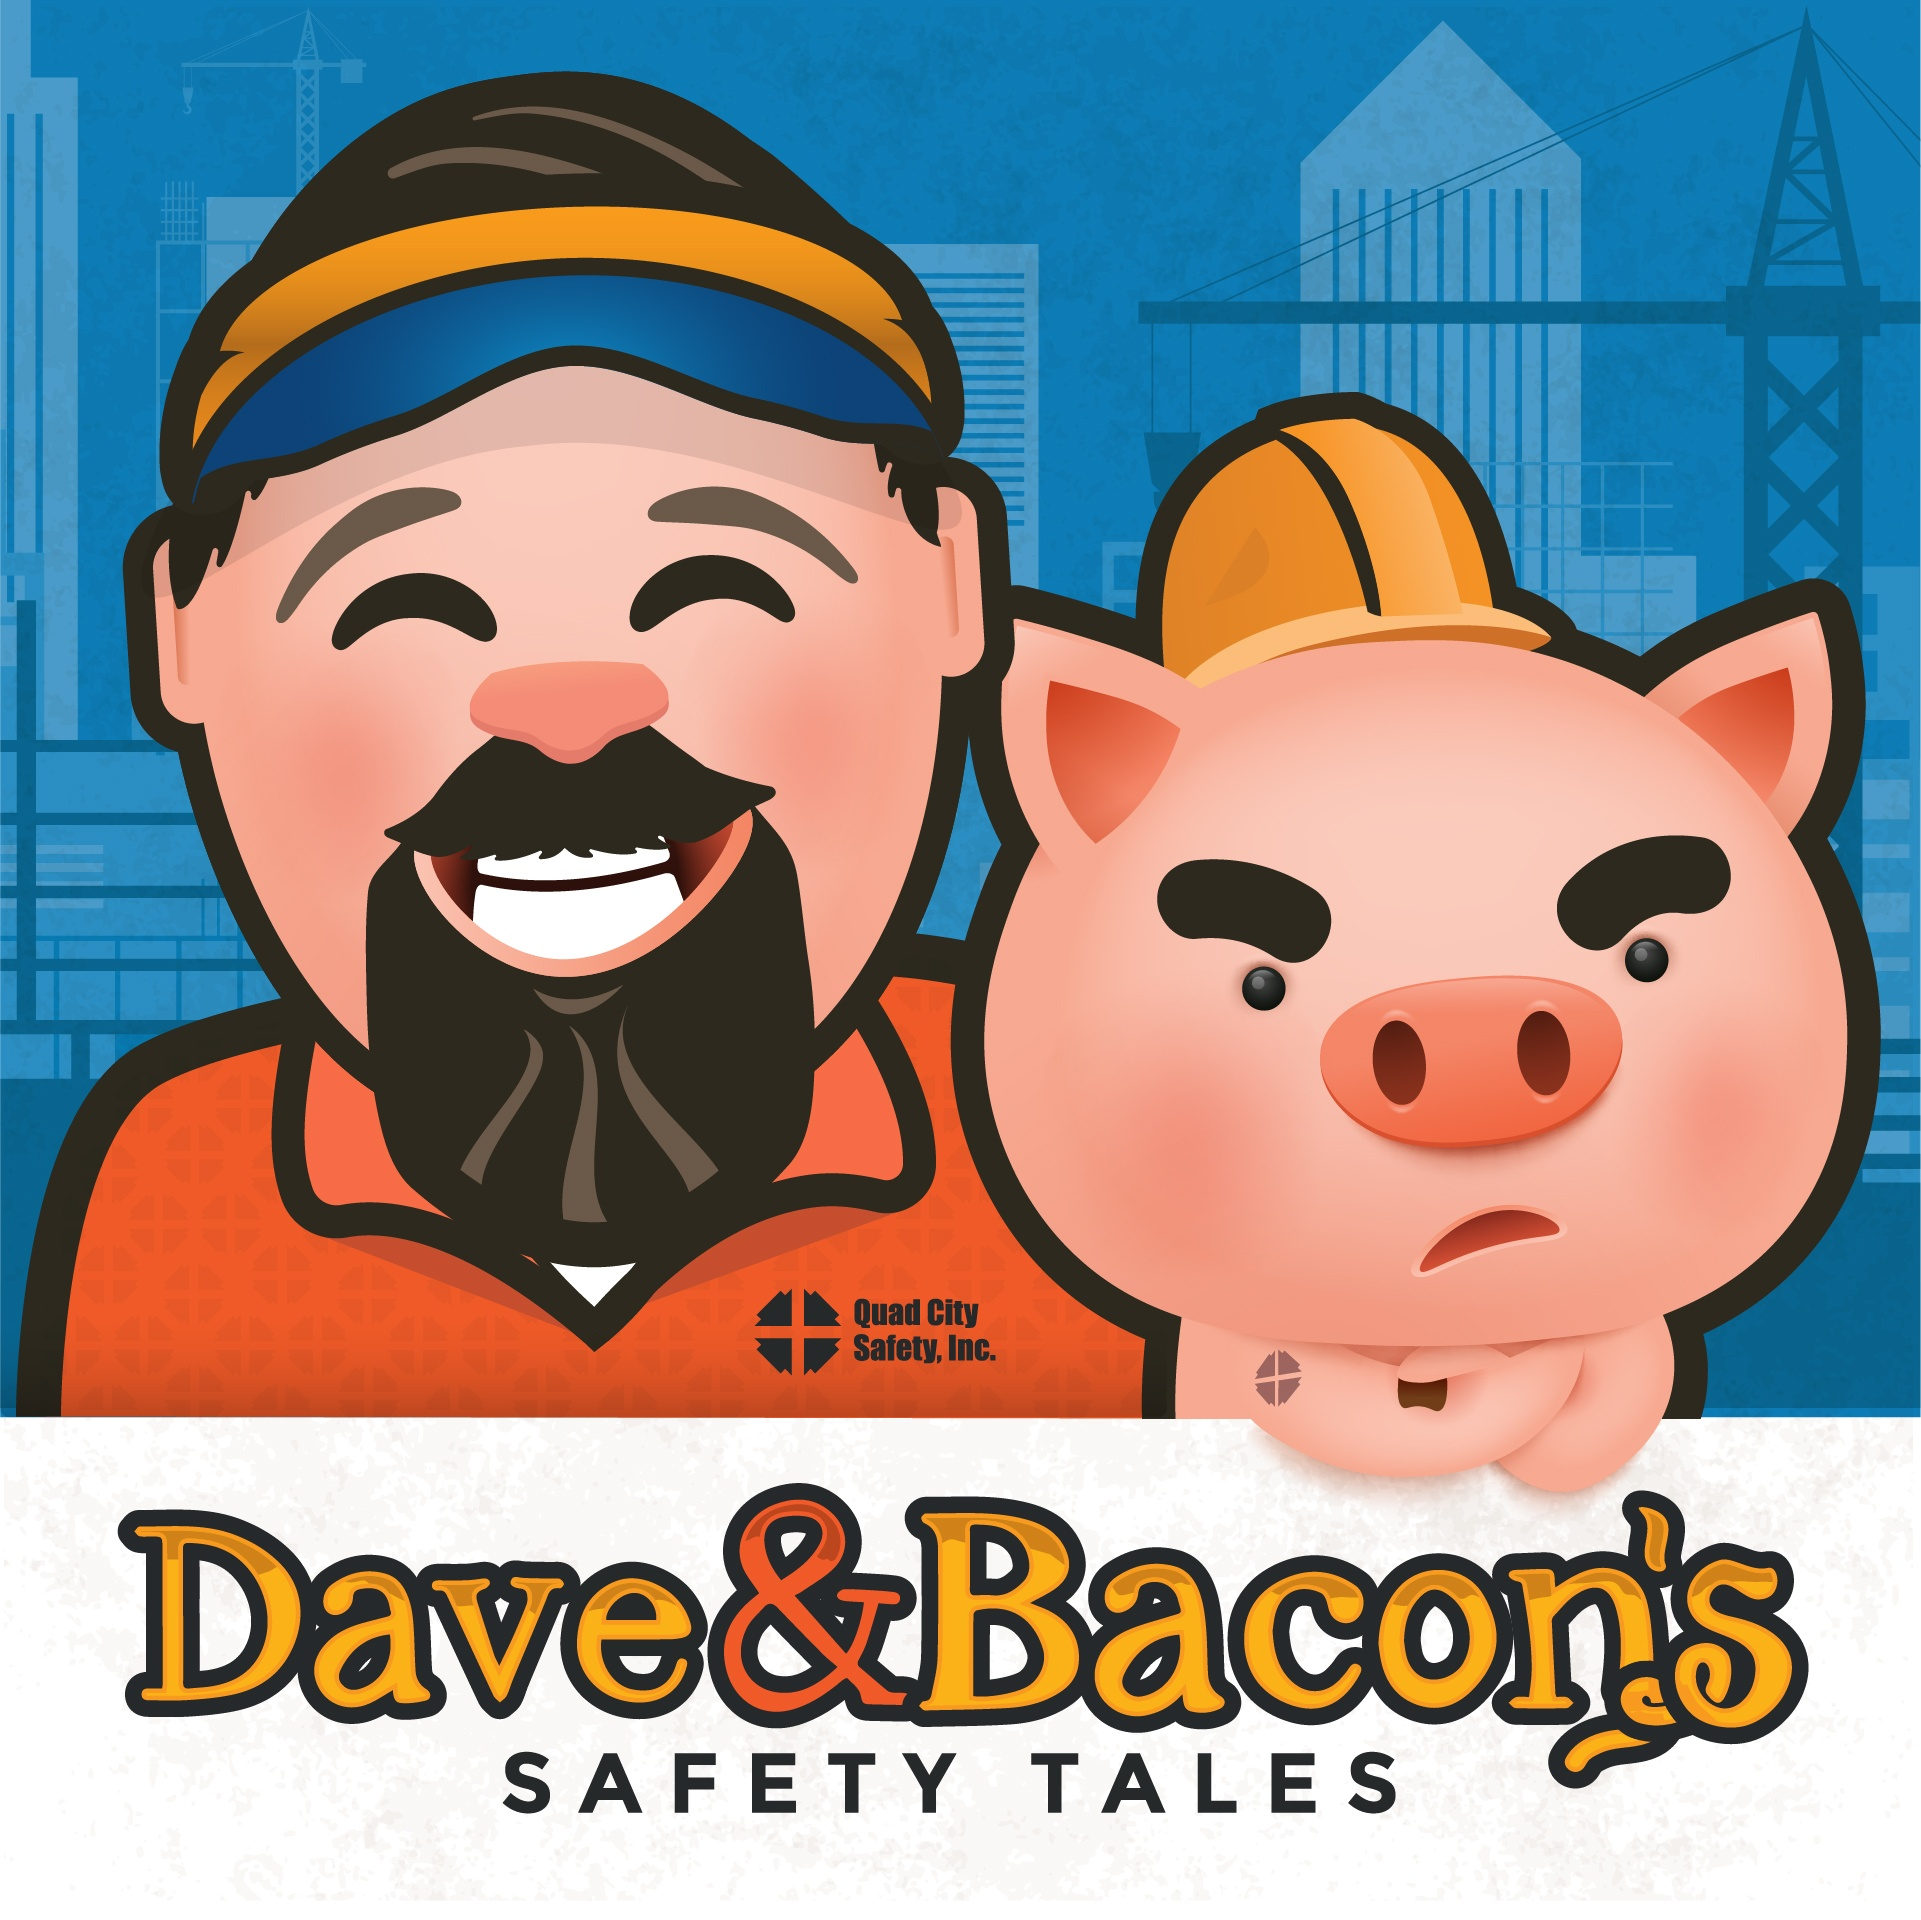 Dave & Bacon's Safety Tales - Industrial Safety Podcast